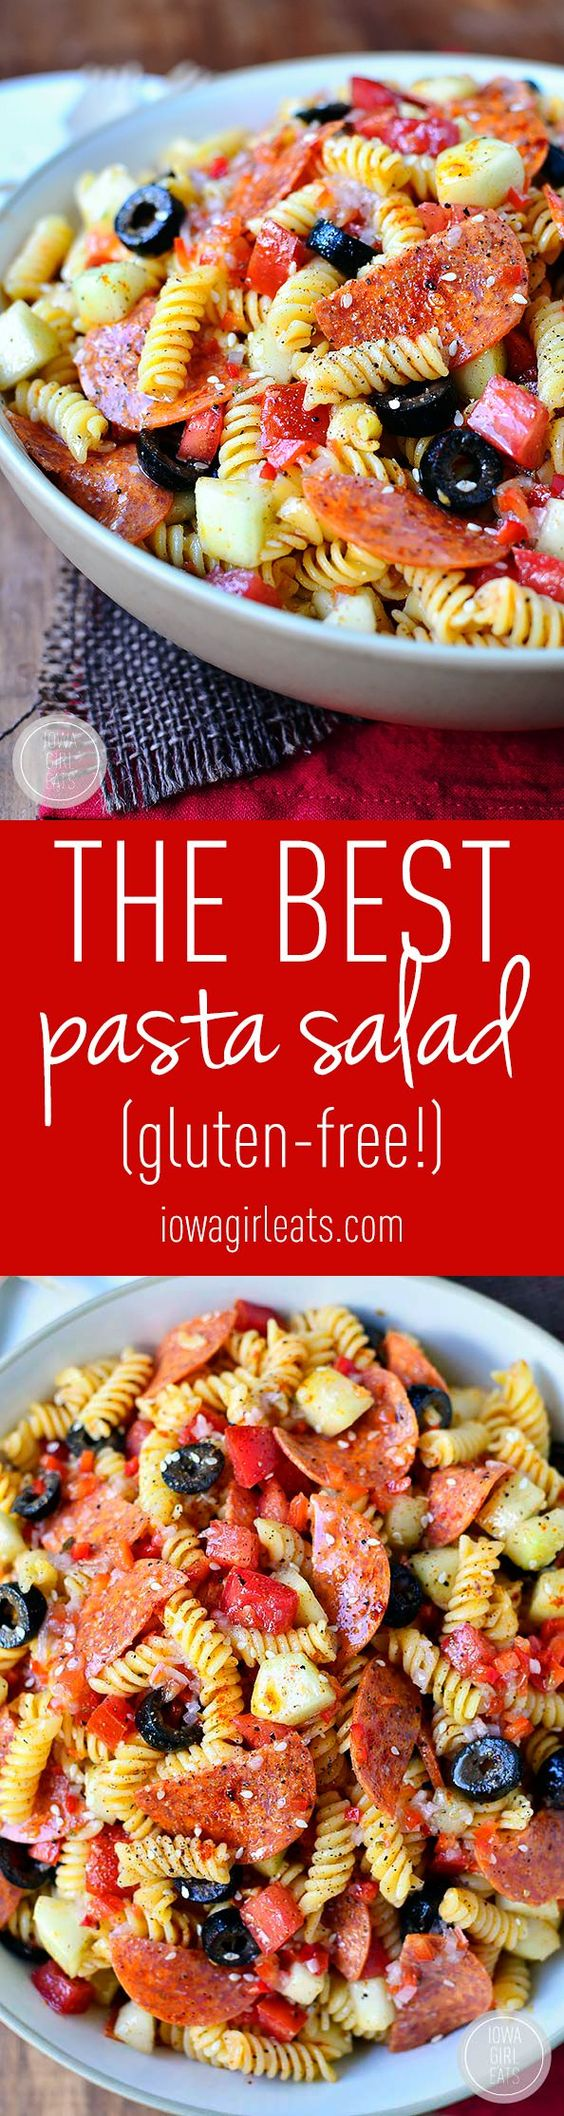 "The BEST Pasta Salad Recipe via Iowa Girl Eats - This ""is an old family recipe. Simple and simply the best (easily made gluten-free, too!)"" Easy Pasta Salad Recipes - The BEST Yummy Barbecue Side Dishes, Potluck Favorites and Summer Dinner Party Crowd Pleasers"